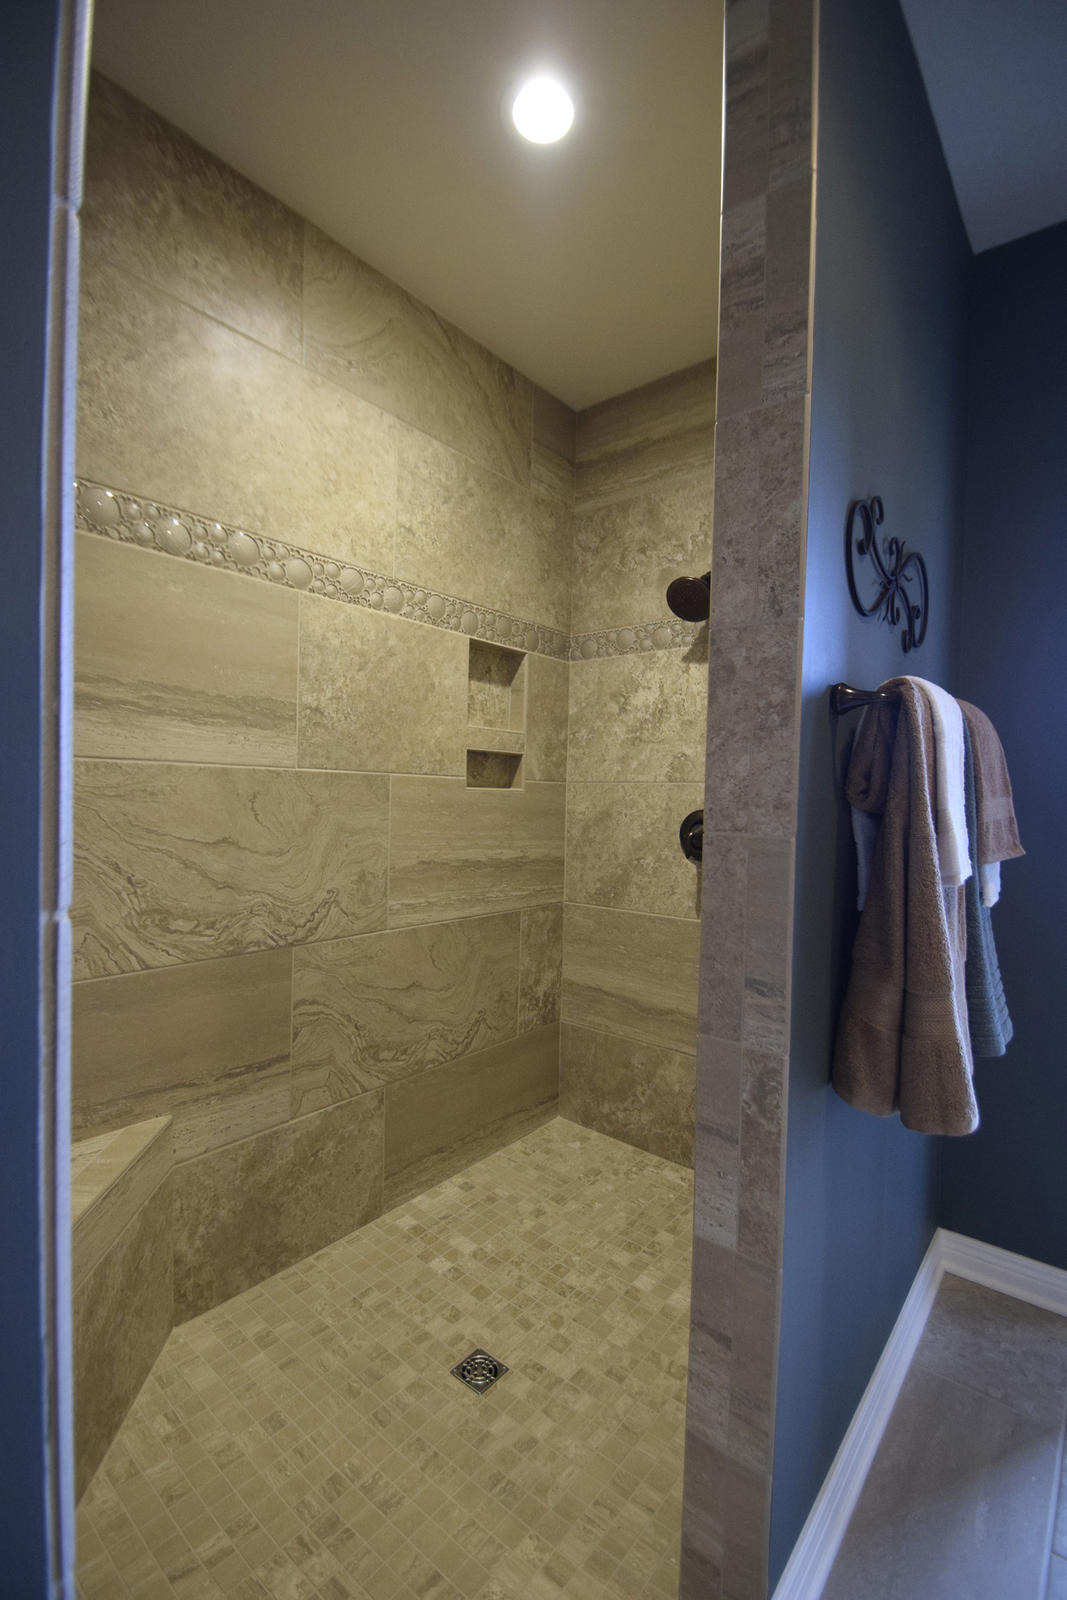 42wh freedom shower b